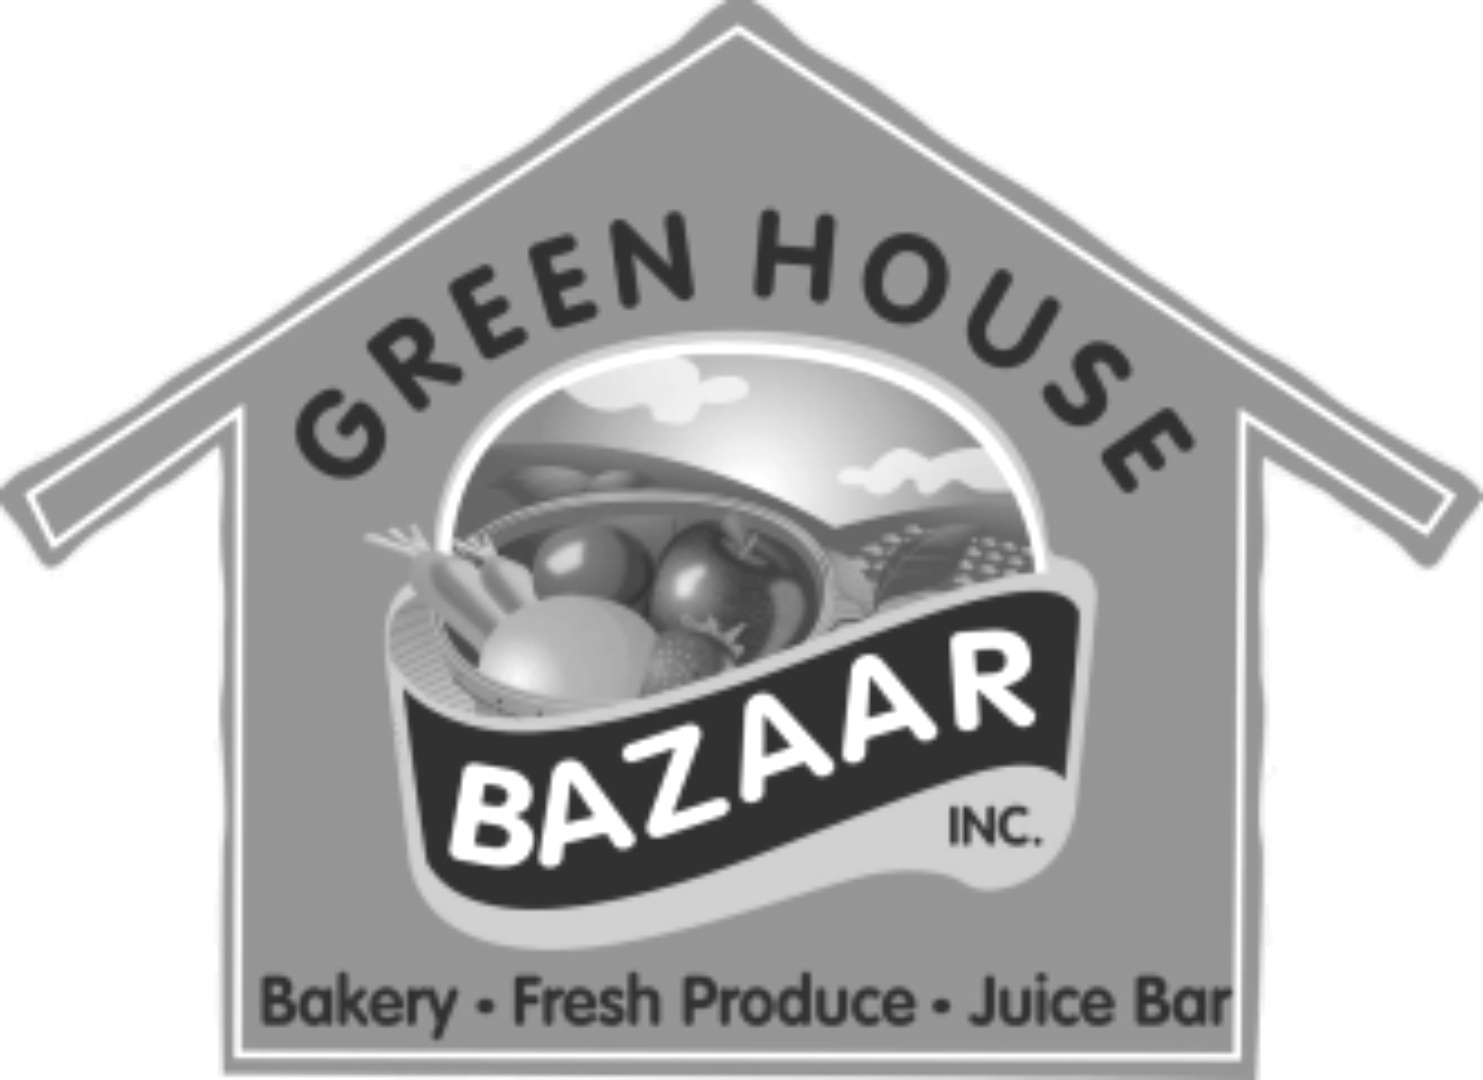 green house bazaar logo seo services